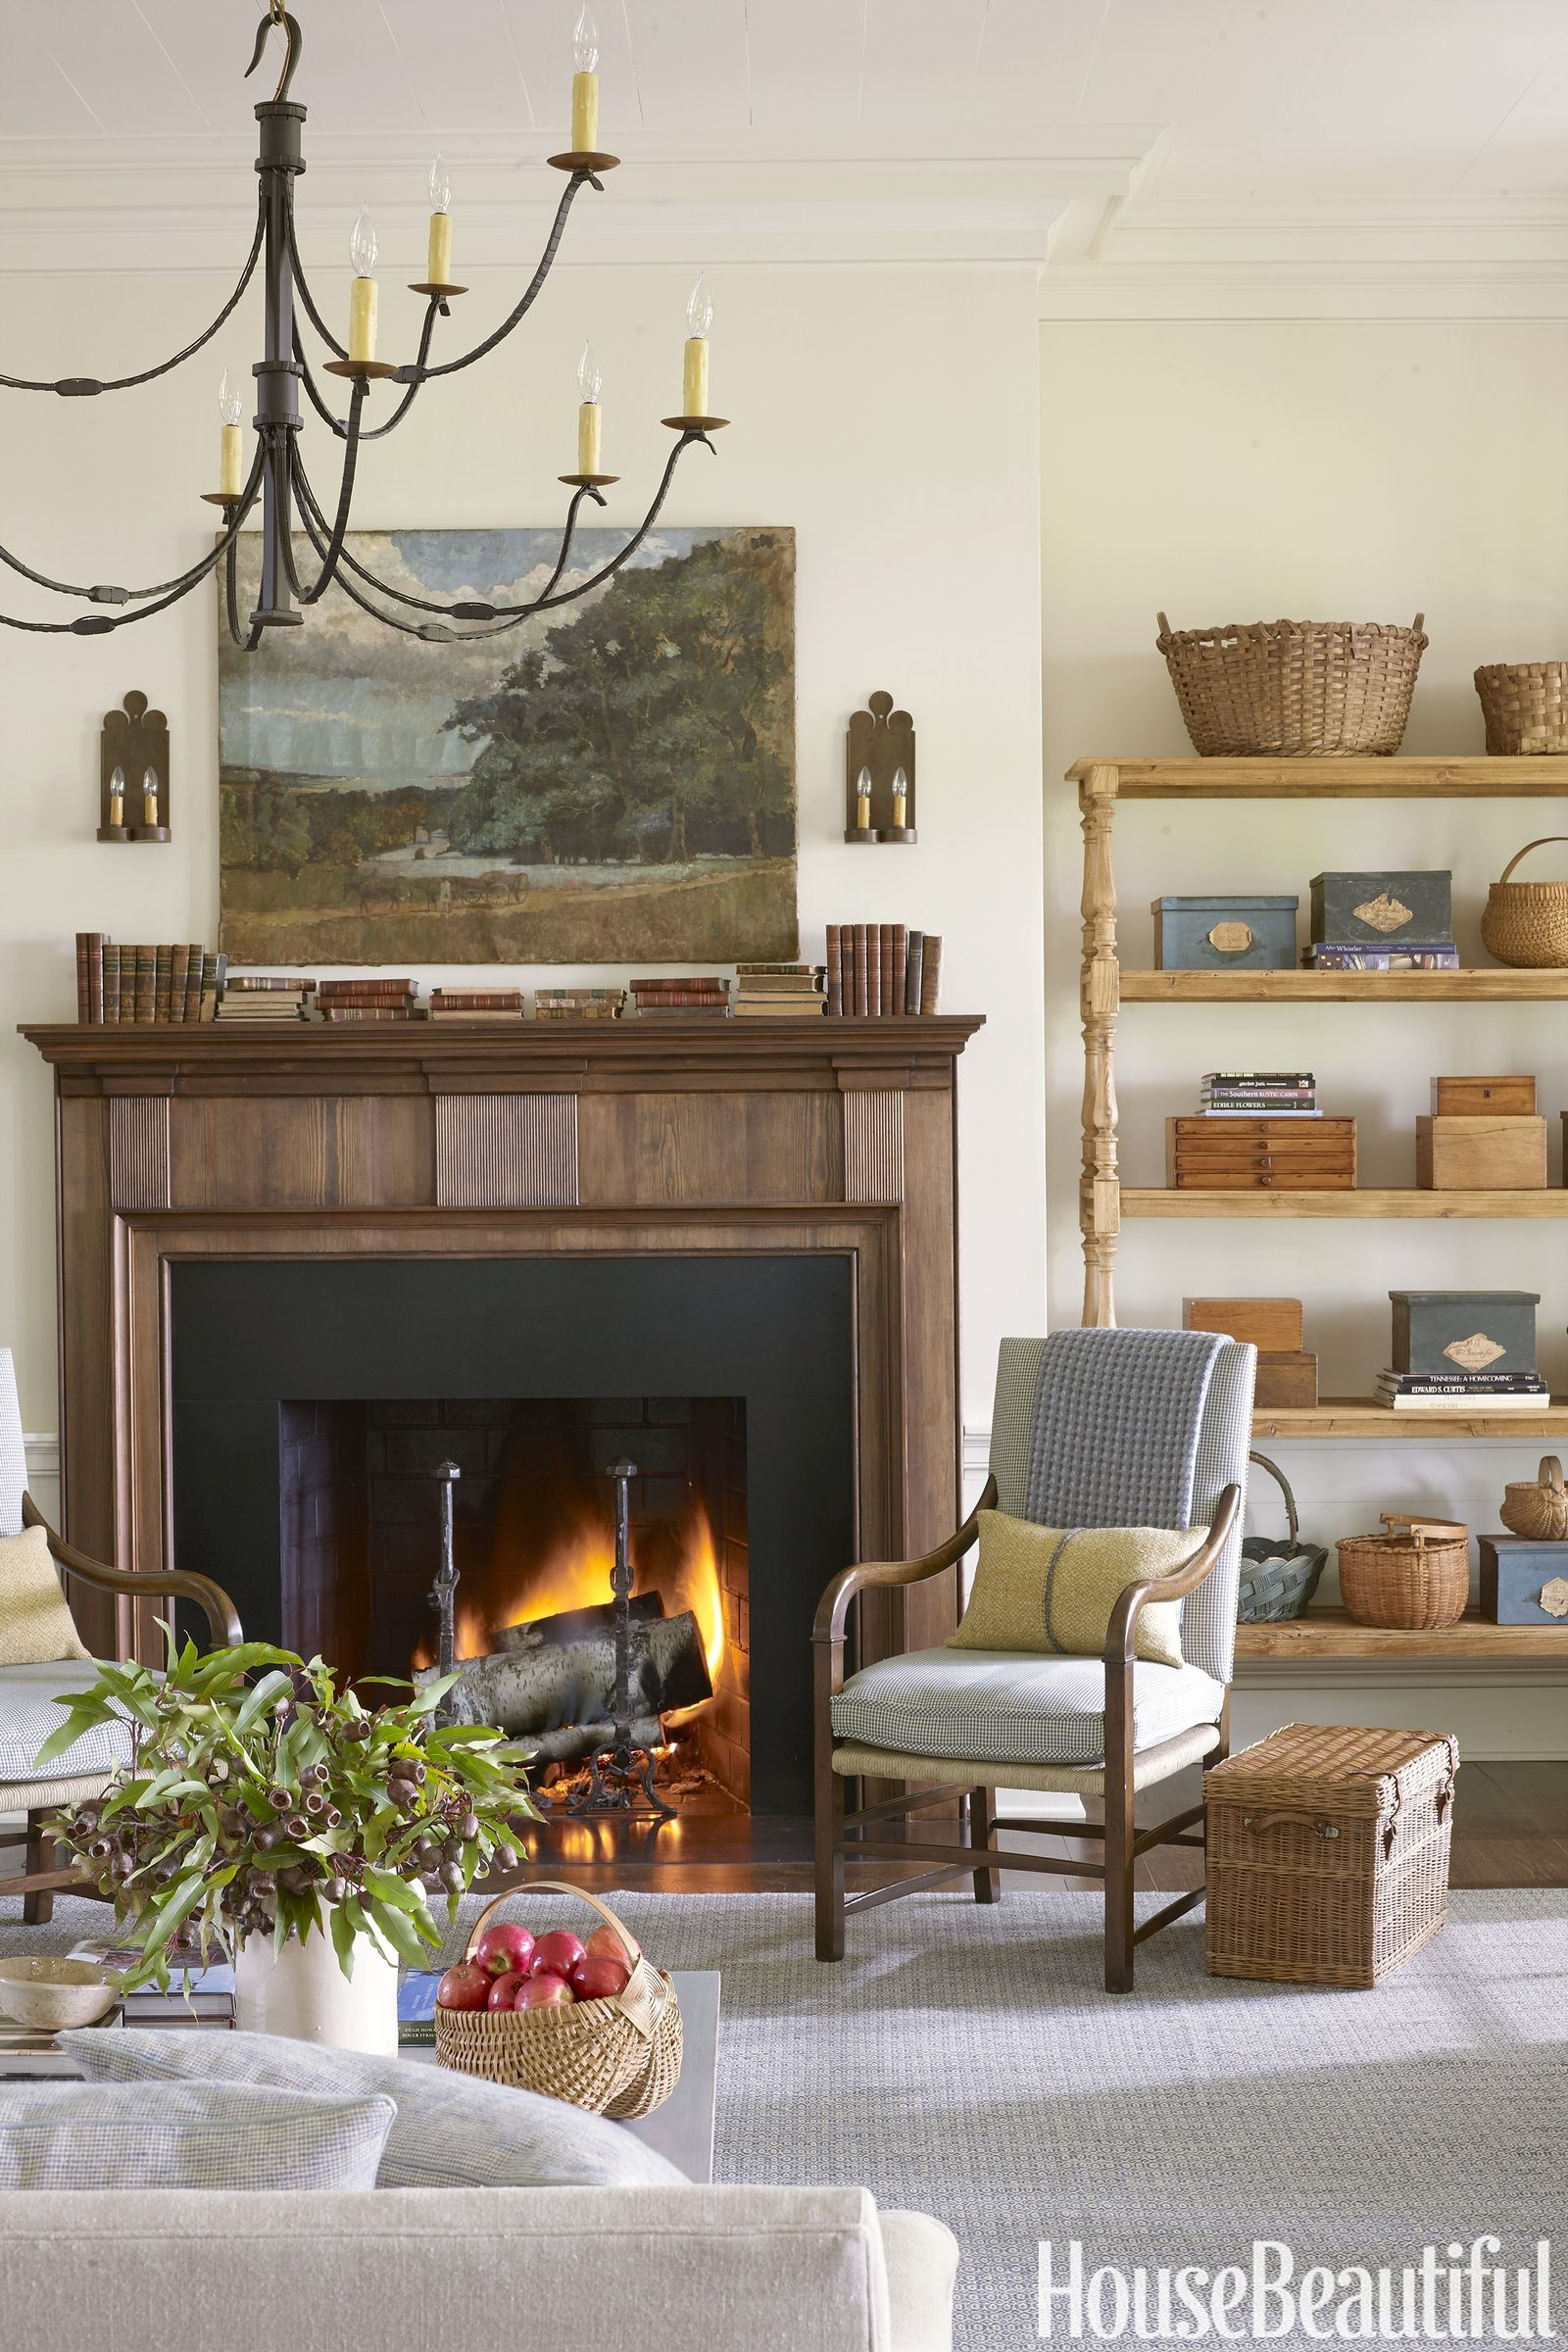 Living Room Designer Unique This Country Home Is Singlehandedly Making Baskets Cool Again Inspiration